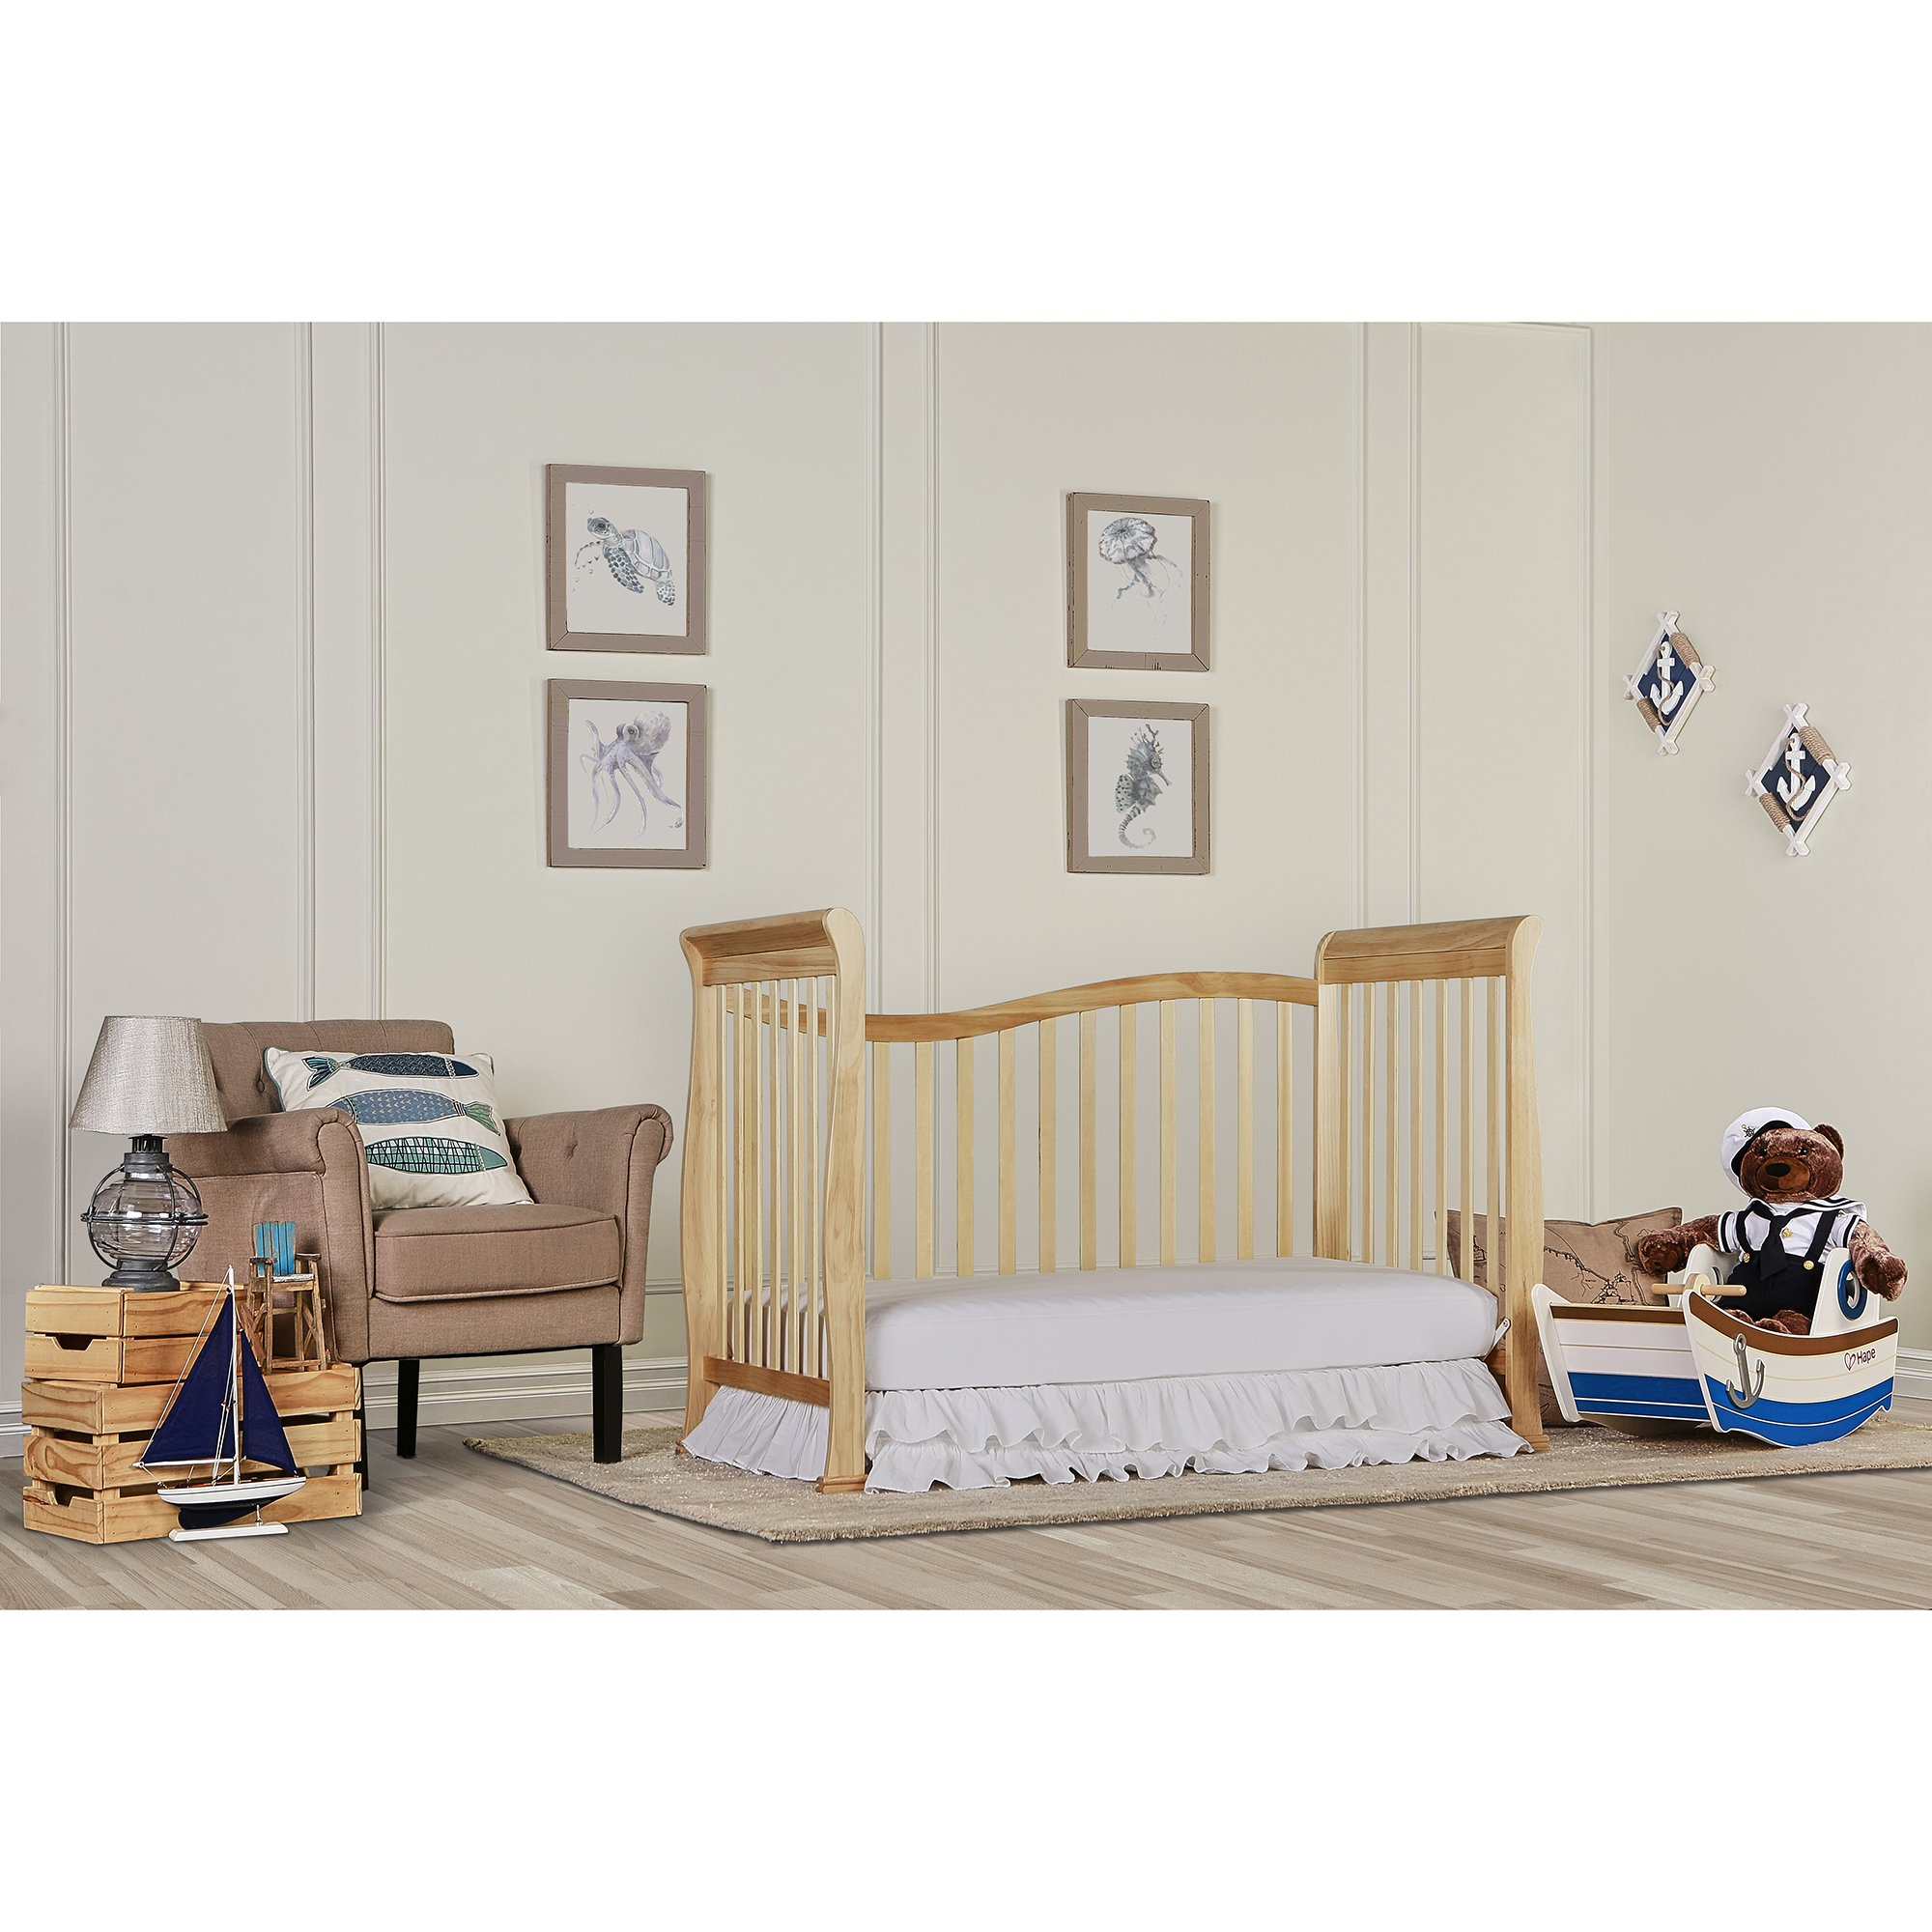 Dream On Me Violet 7 in 1 Convertible Life Style Crib, Natural by Dream On Me (Image #4)